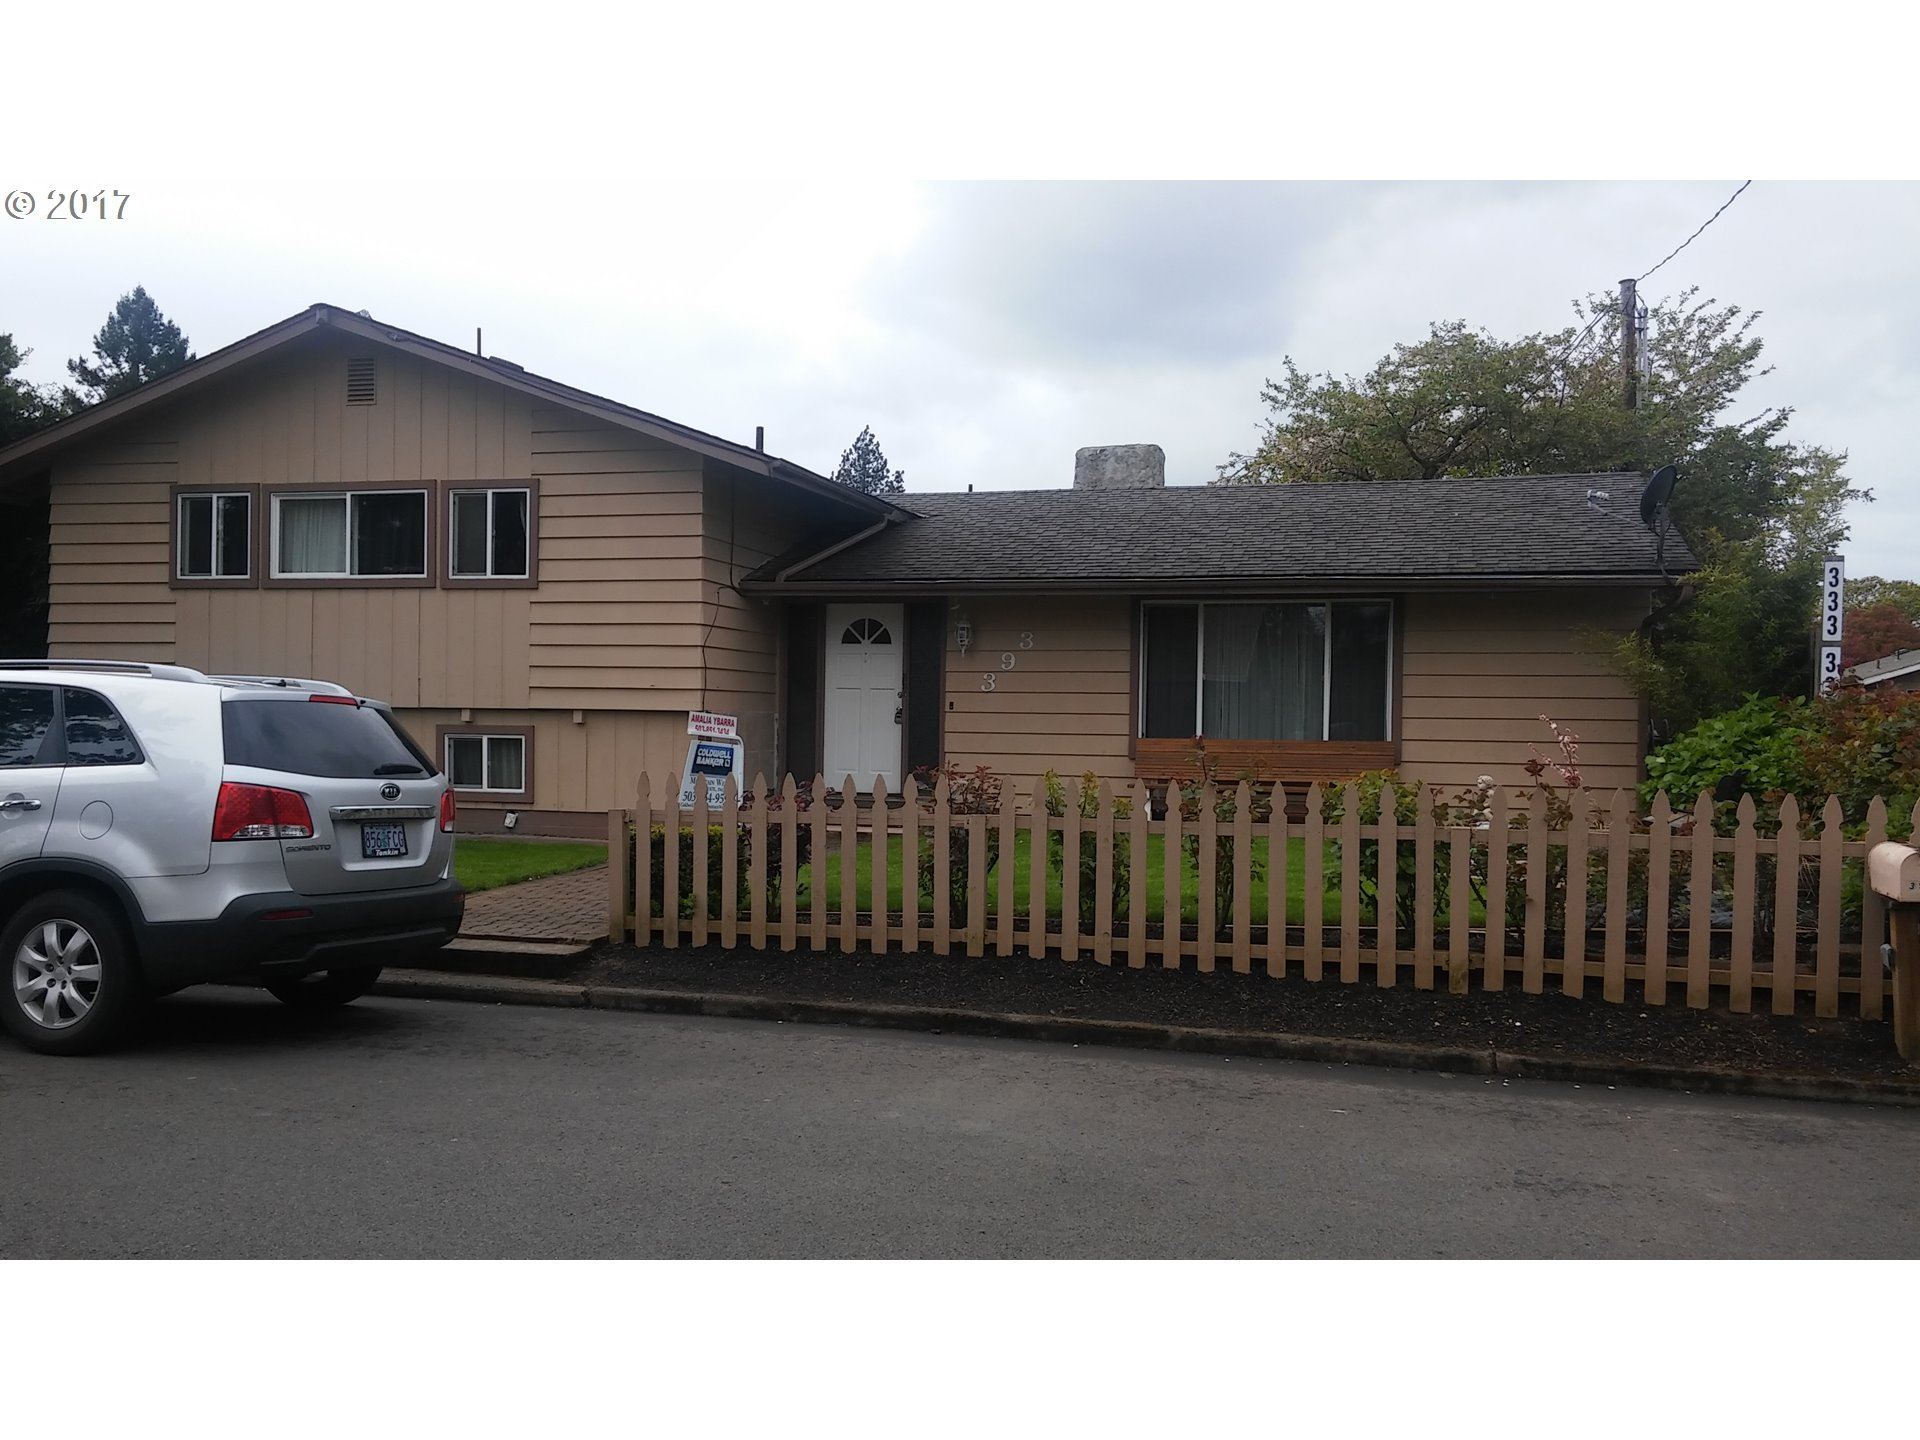 393 S KNOTT ST, Canby, OR 97013